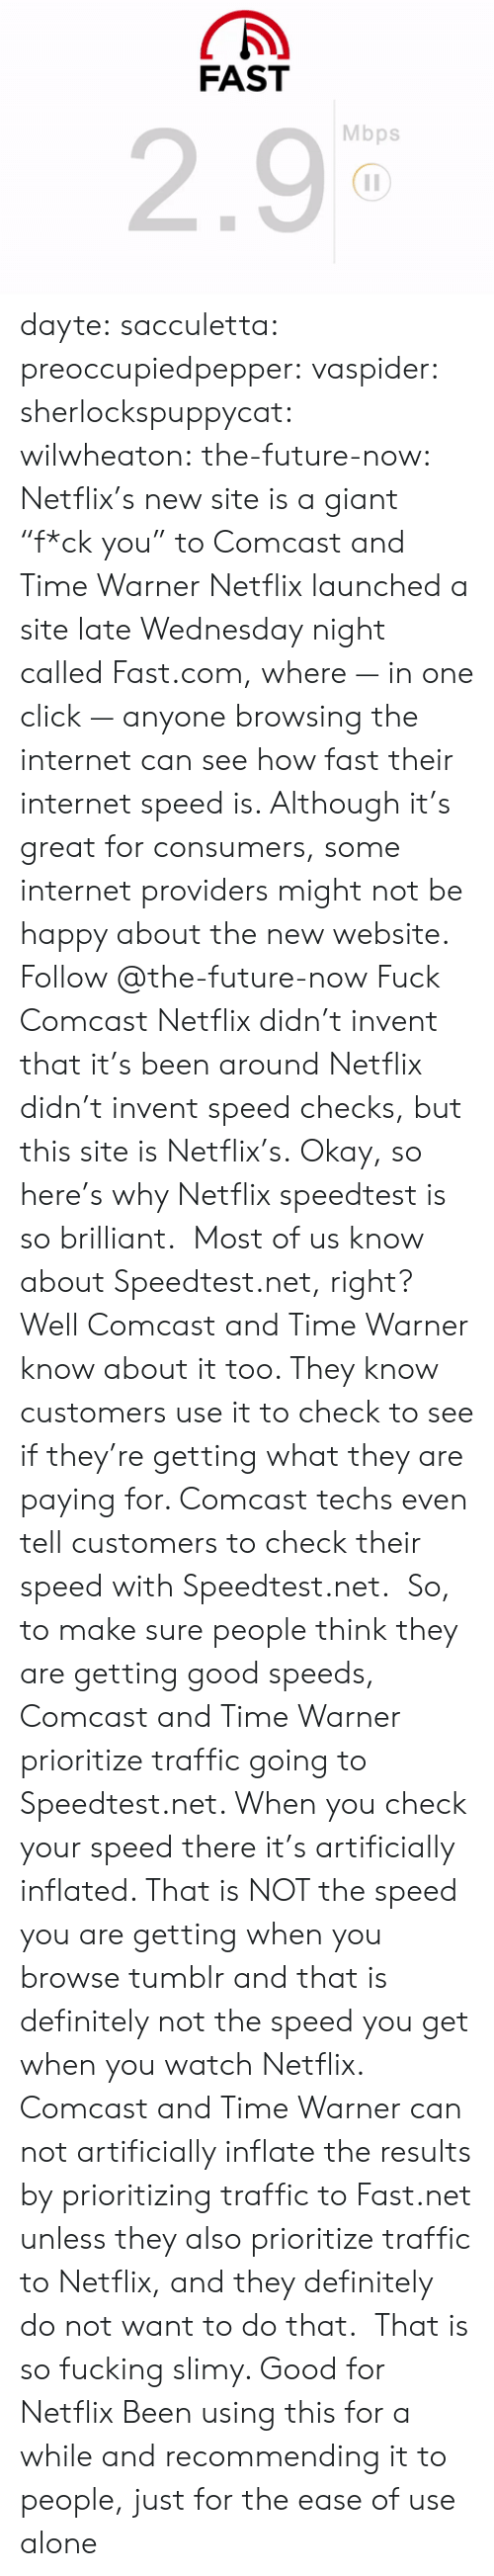 """internet speed: FAST  2.9  Mbps dayte: sacculetta:  preoccupiedpepper:  vaspider:  sherlockspuppycat:  wilwheaton:  the-future-now:  Netflix's new site is a giant """"f*ck you"""" to Comcast and Time Warner Netflixlauncheda site late Wednesday night calledFast.com, where — in one click — anyone browsing the internet can see how fast their internet speed is. Although it's great for consumers, some internet providers might not be happy about the new website. Follow @the-future-now  Fuck Comcast  Netflix didn't invent that it's been around  Netflix didn't invent speed checks, but this site is Netflix's.  Okay, so here's why Netflix speedtest is so brilliant. Most of us know about Speedtest.net, right? Well Comcast and Time Warner know about it too. They know customers use it to check to see if they're getting what they are paying for. Comcast techs even tell customers to check their speed with Speedtest.net. So, to make sure people think they are getting good speeds, Comcast and Time Warner prioritize traffic going to Speedtest.net. When you check your speed there it's artificially inflated. That is NOT the speed you are getting when you browse tumblr and that is definitely not the speed you get when you watch Netflix. Comcast and Time Warner can not artificially inflate the results by prioritizing traffic to Fast.net unless they also prioritize traffic to Netflix, and they definitely do not want to do that.  That is so fucking slimy. Good for Netflix   Been using this for a while and recommending it to people, just for the ease of use alone"""